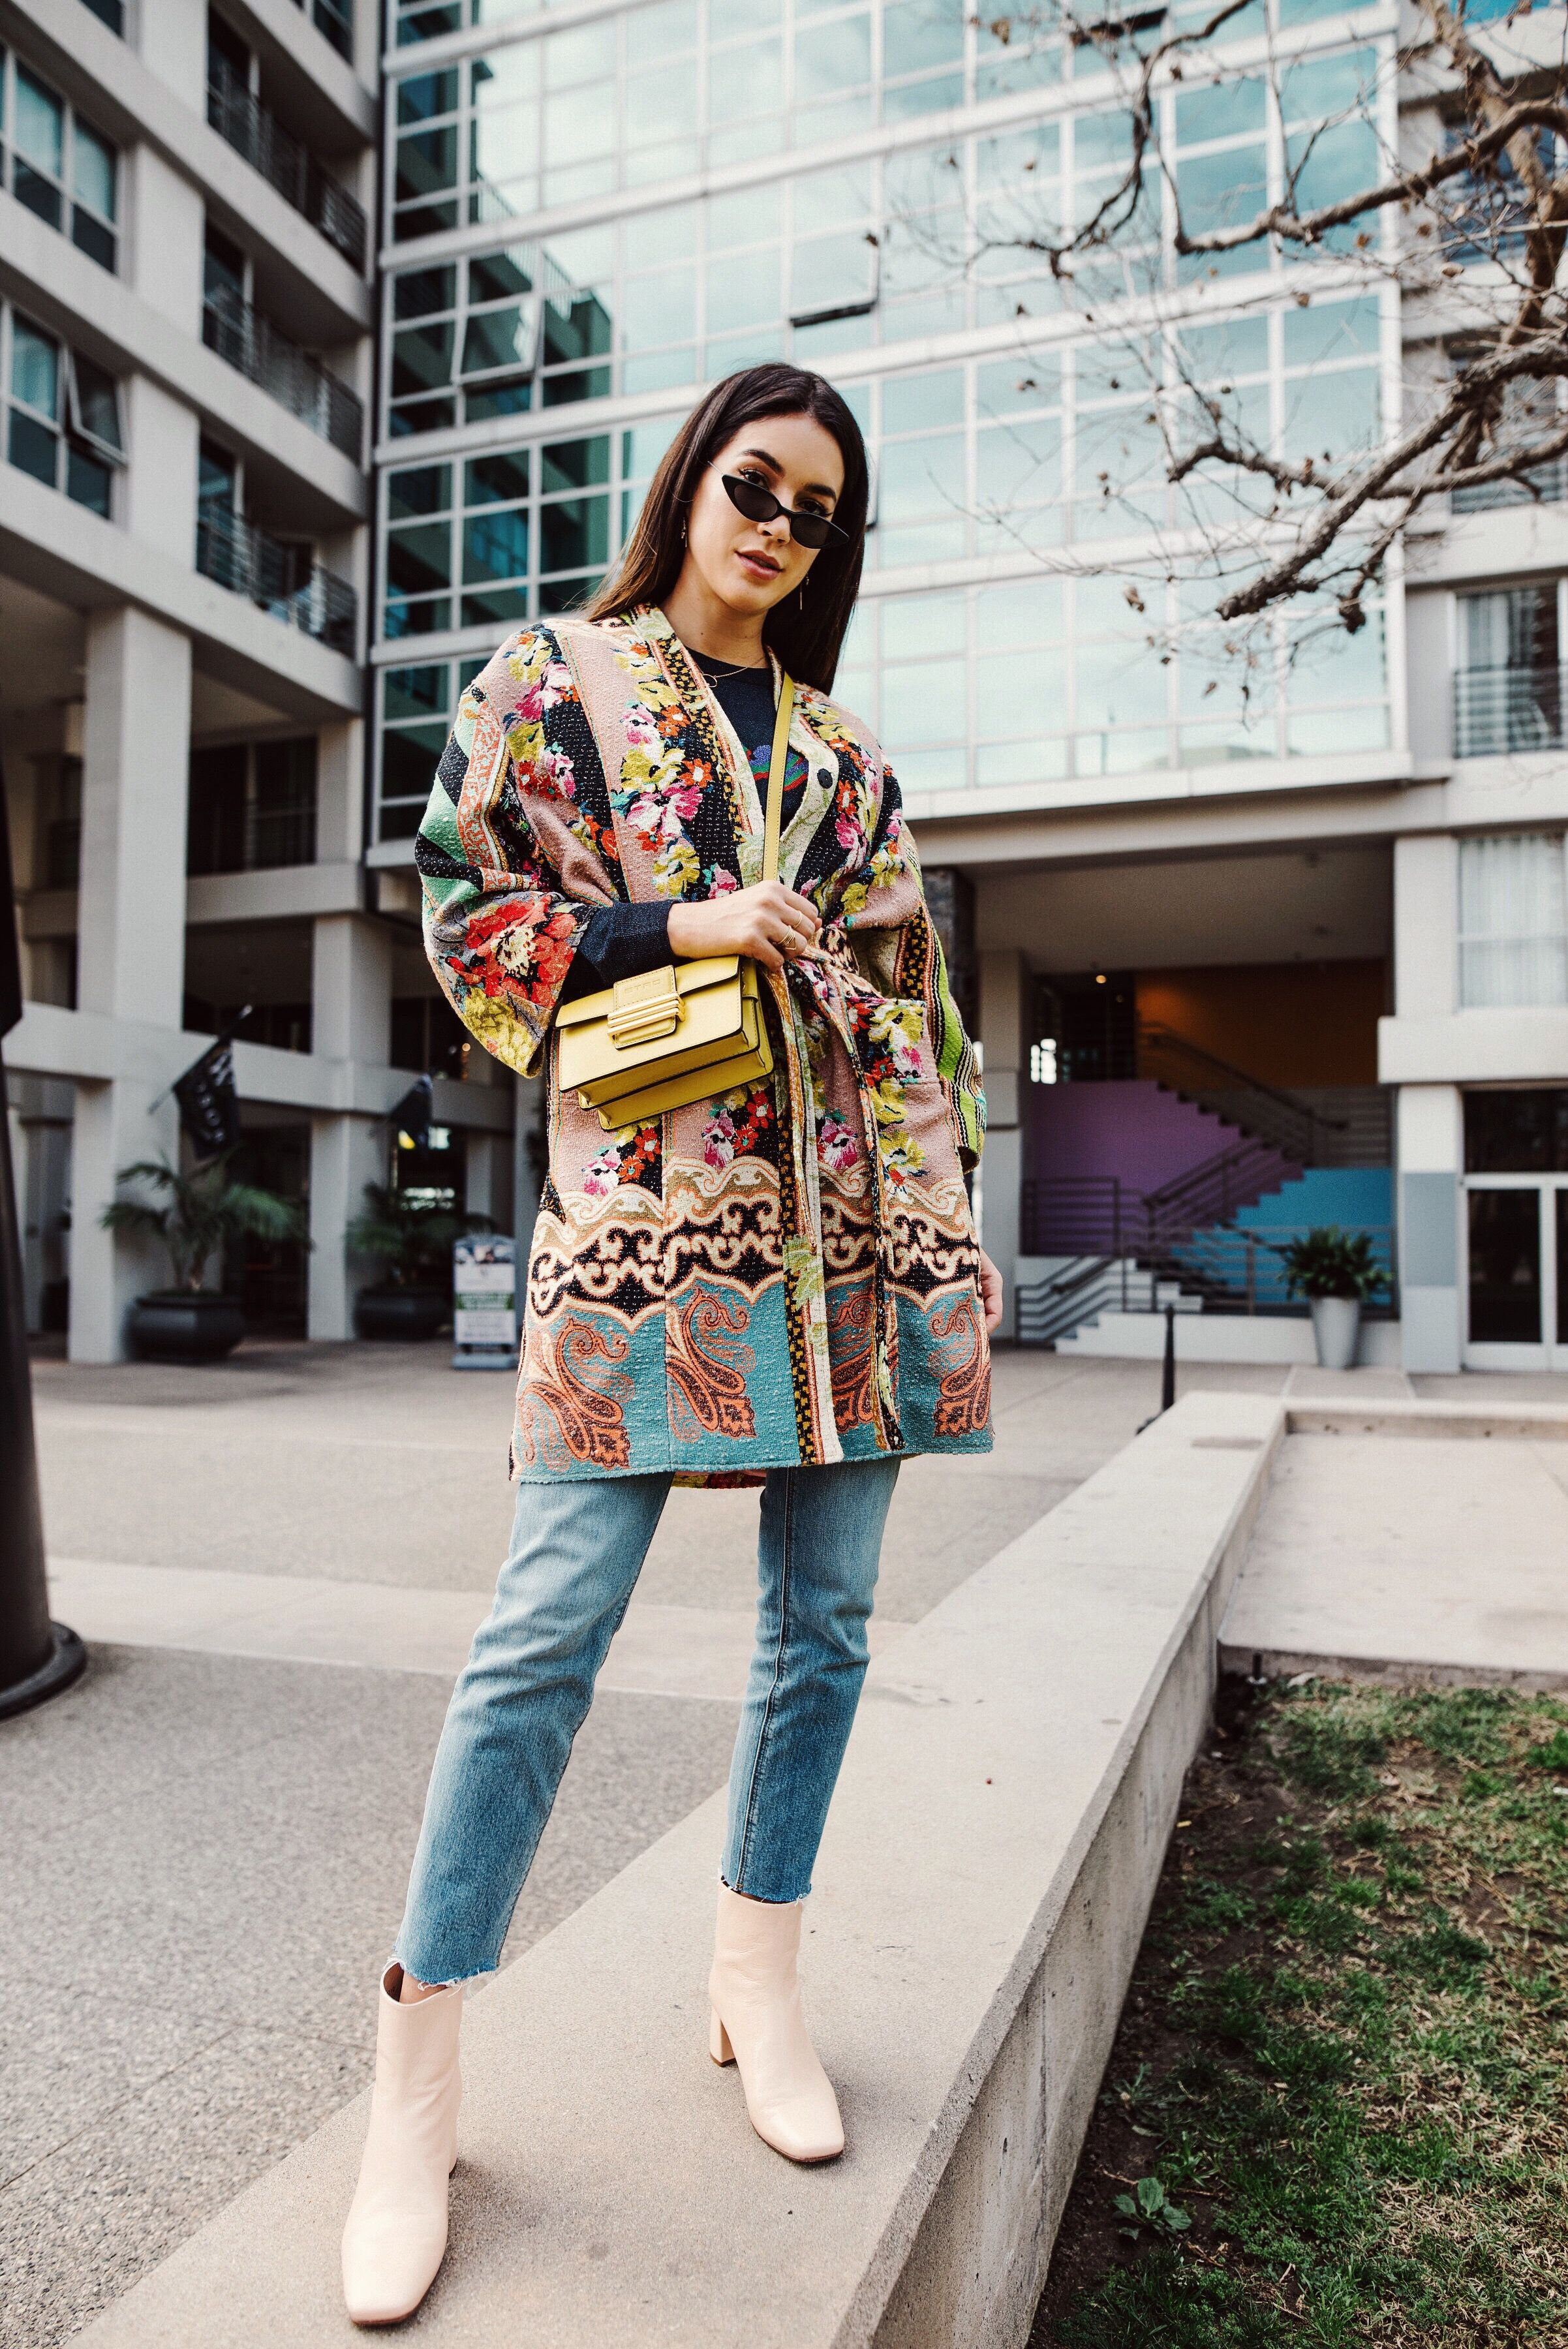 The Colorful Statement Coat   Thrifts and Threads   Fashion